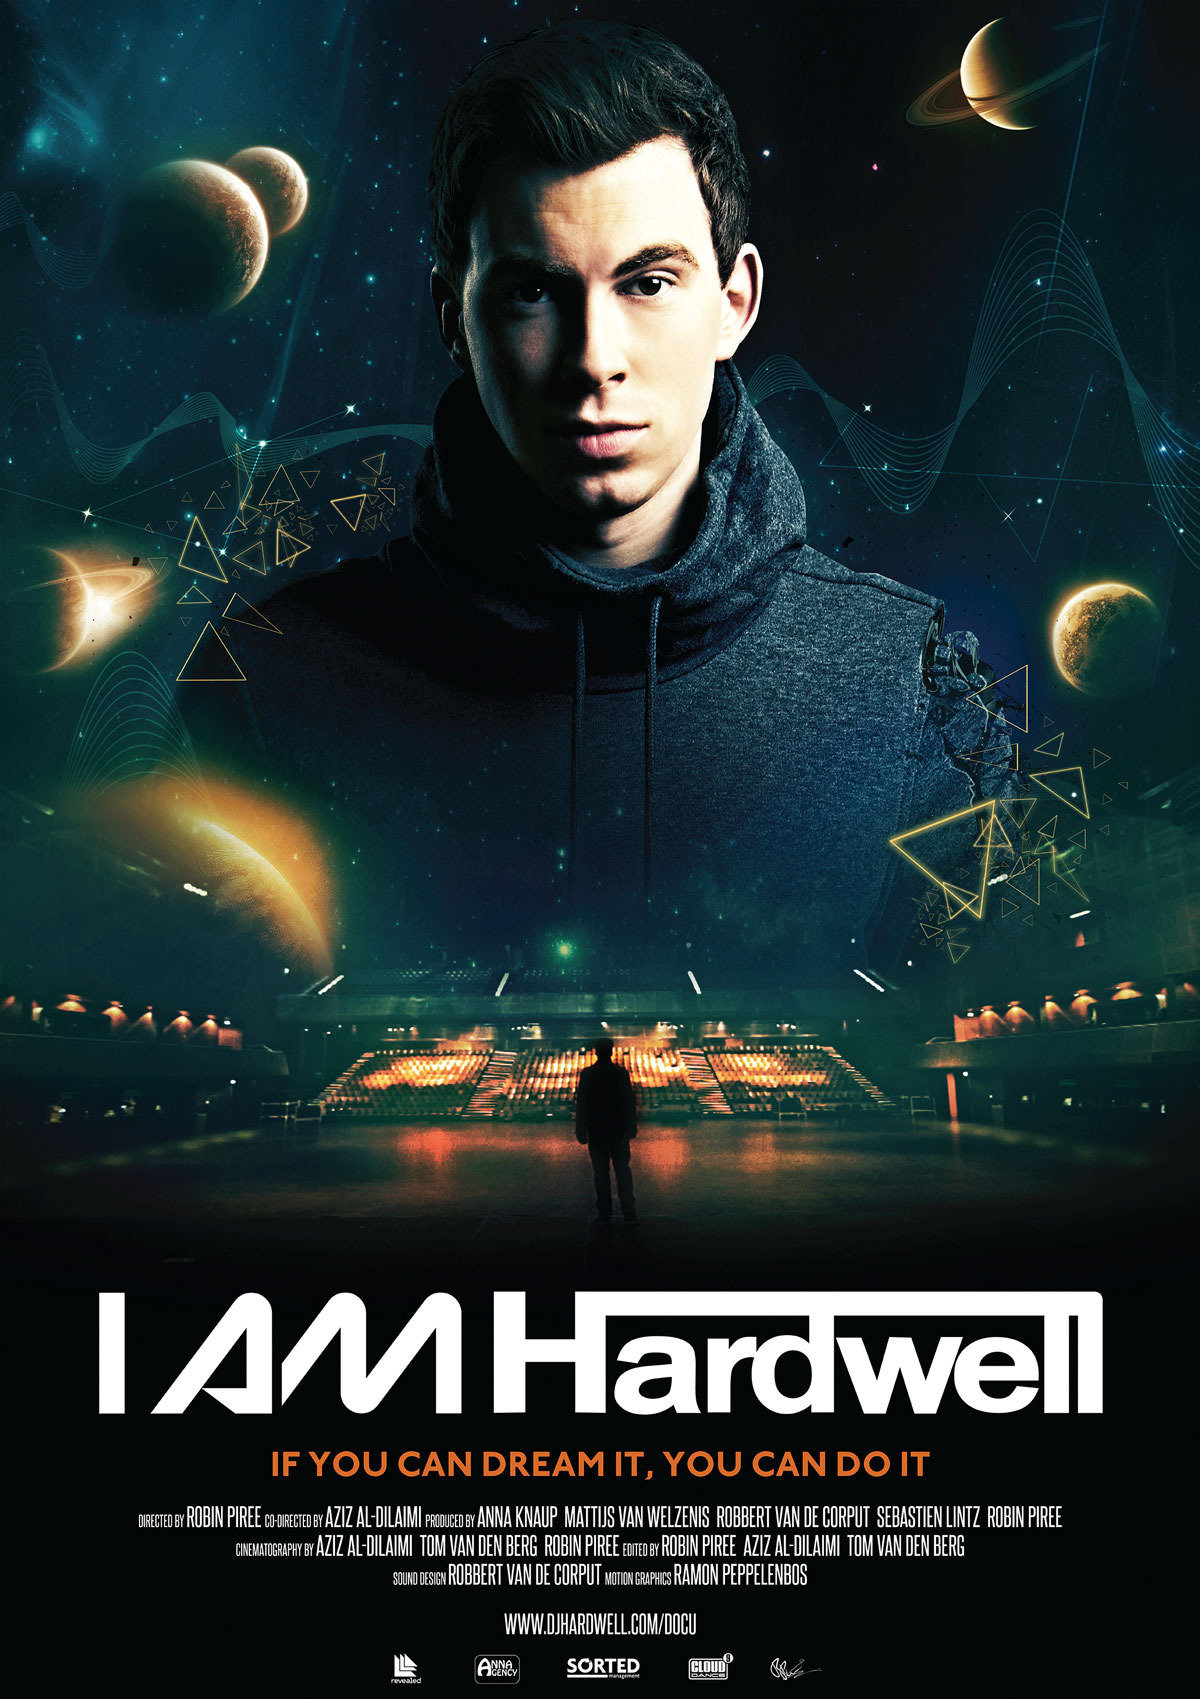 I AM Hardwell Documentary on FREECABLE TV